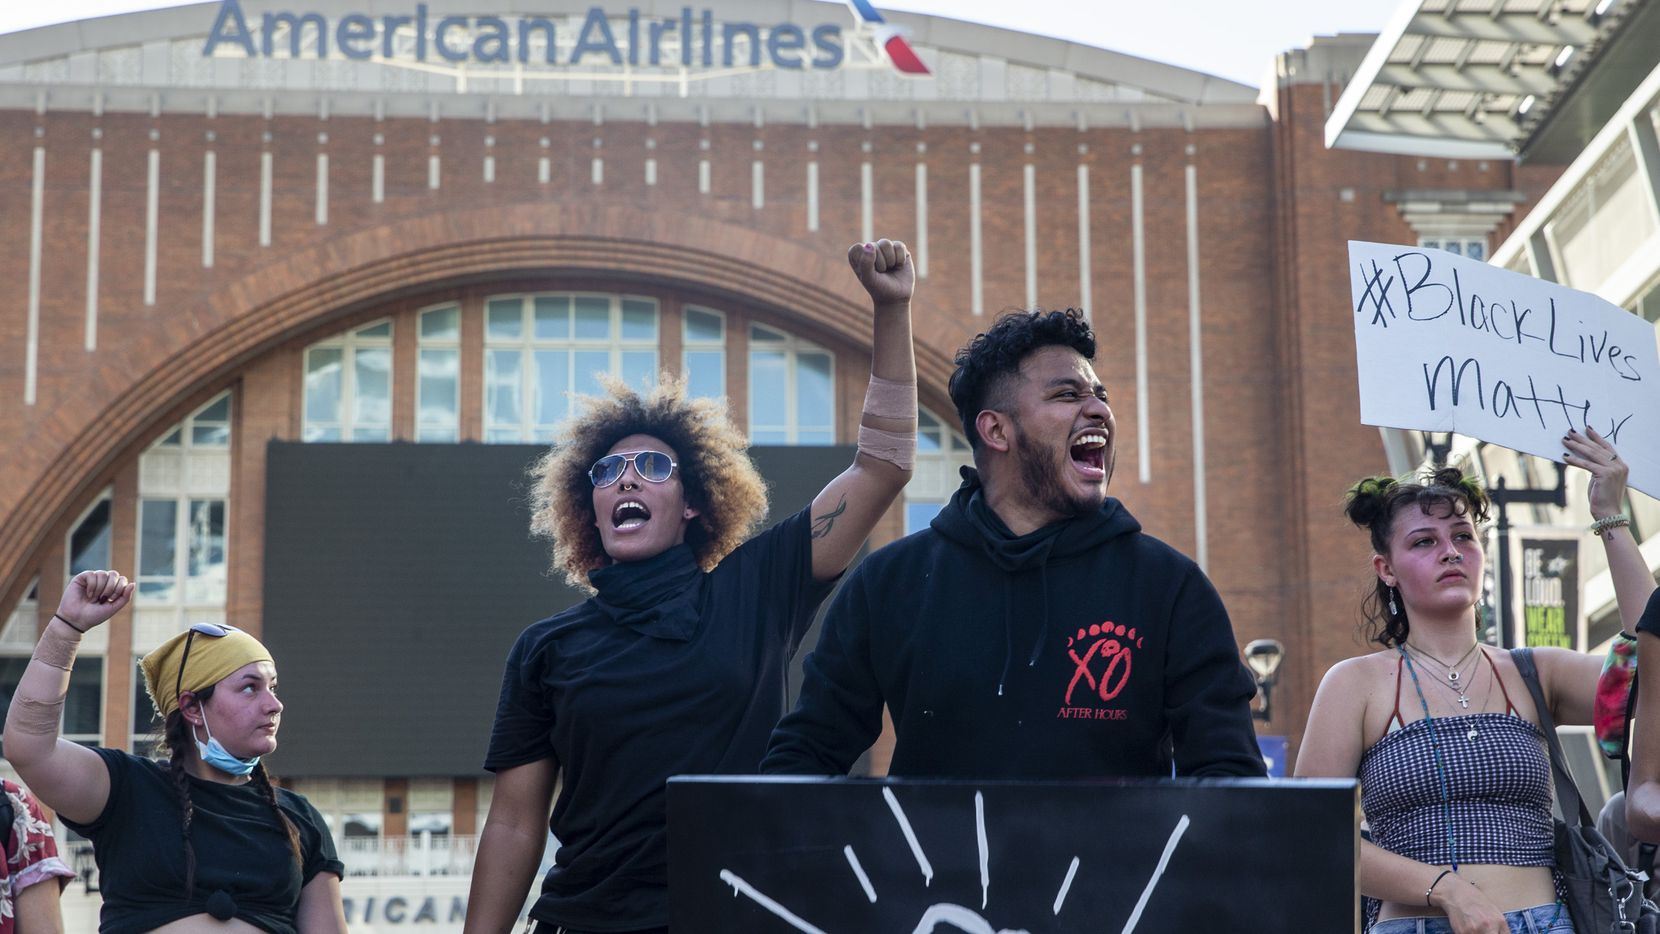 Miguel Ibarra (center right) joined other protesters during a June 4 demonstration at American Airlines Center to denounce police brutality and systemic racism. The arena will house a pop-up testing site on Wednesday and Thursday for protesters.